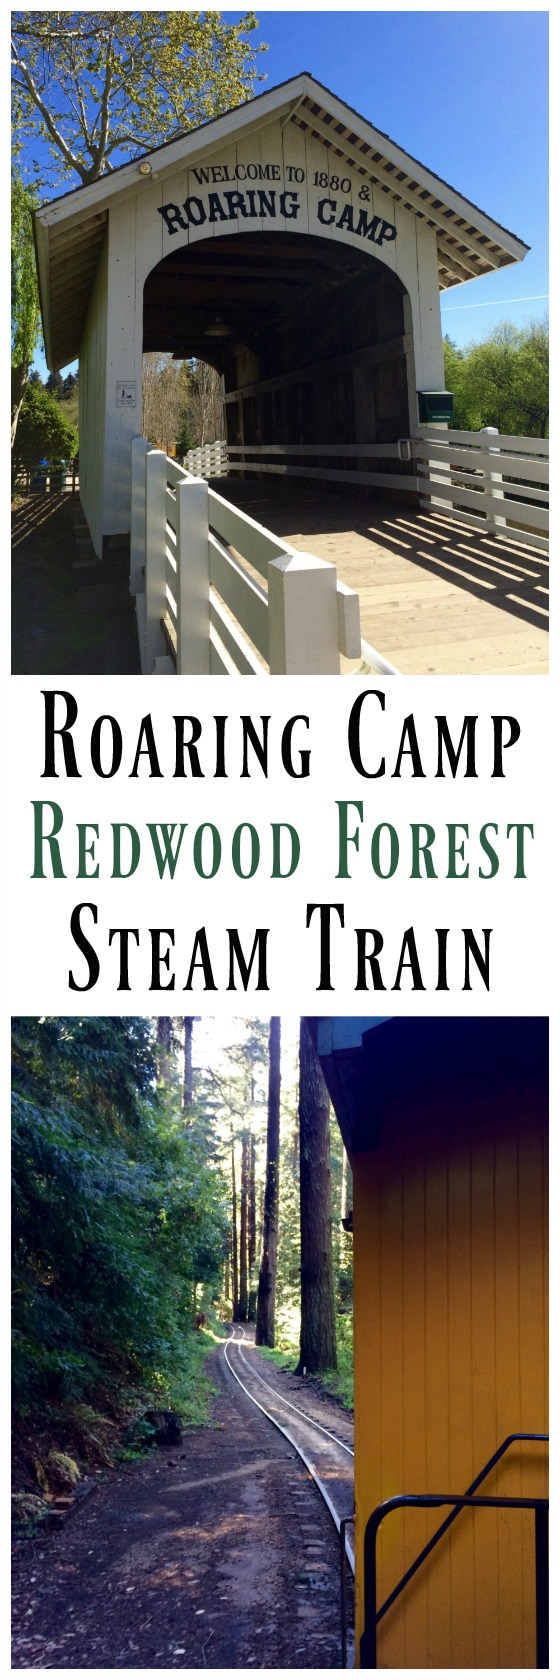 roaring-camp-redwood-forest-steam-train-simple-sojourns